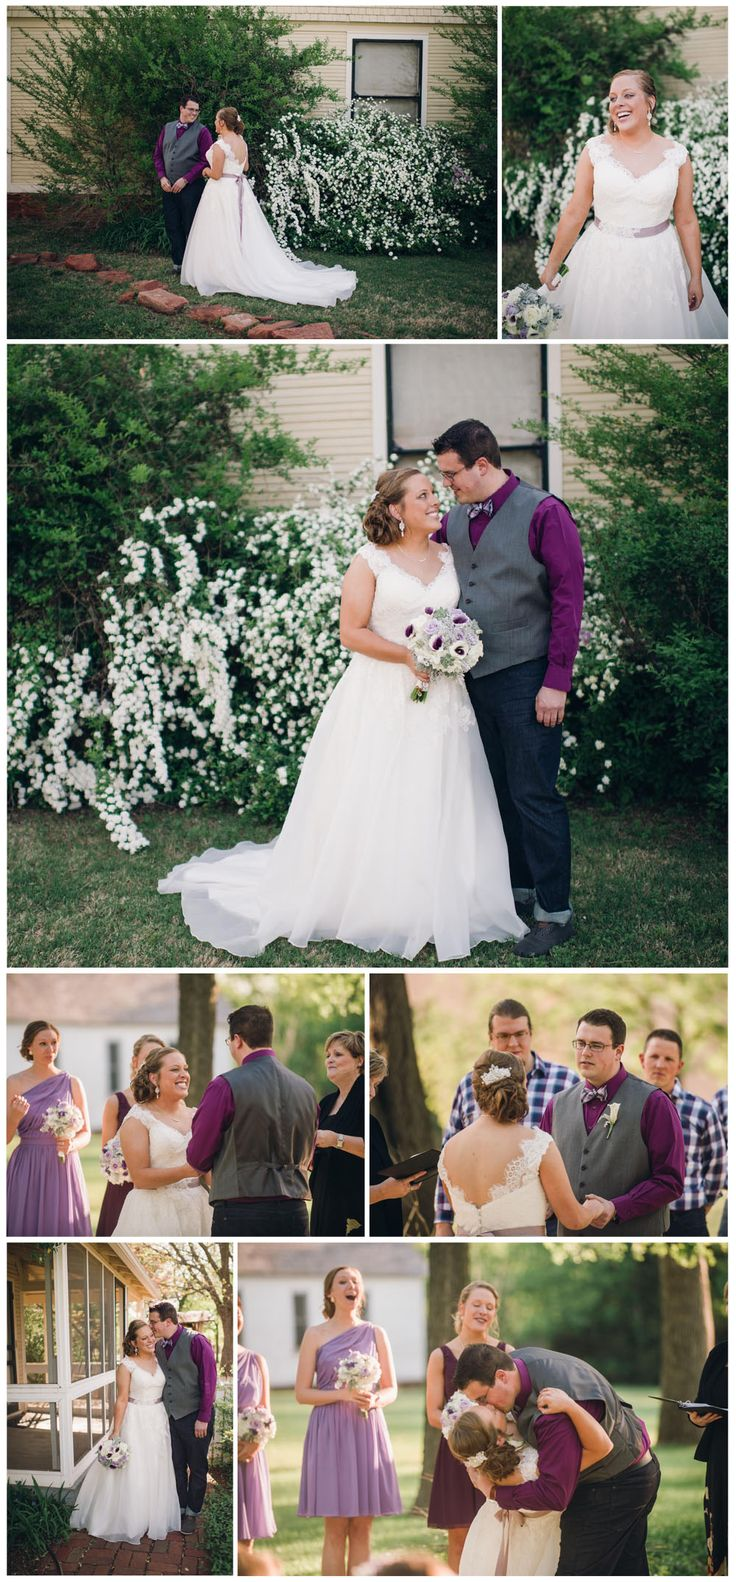 A Wedding At The Historic Harn Homestead In Oklahoma City By Photographers Hibben Photography